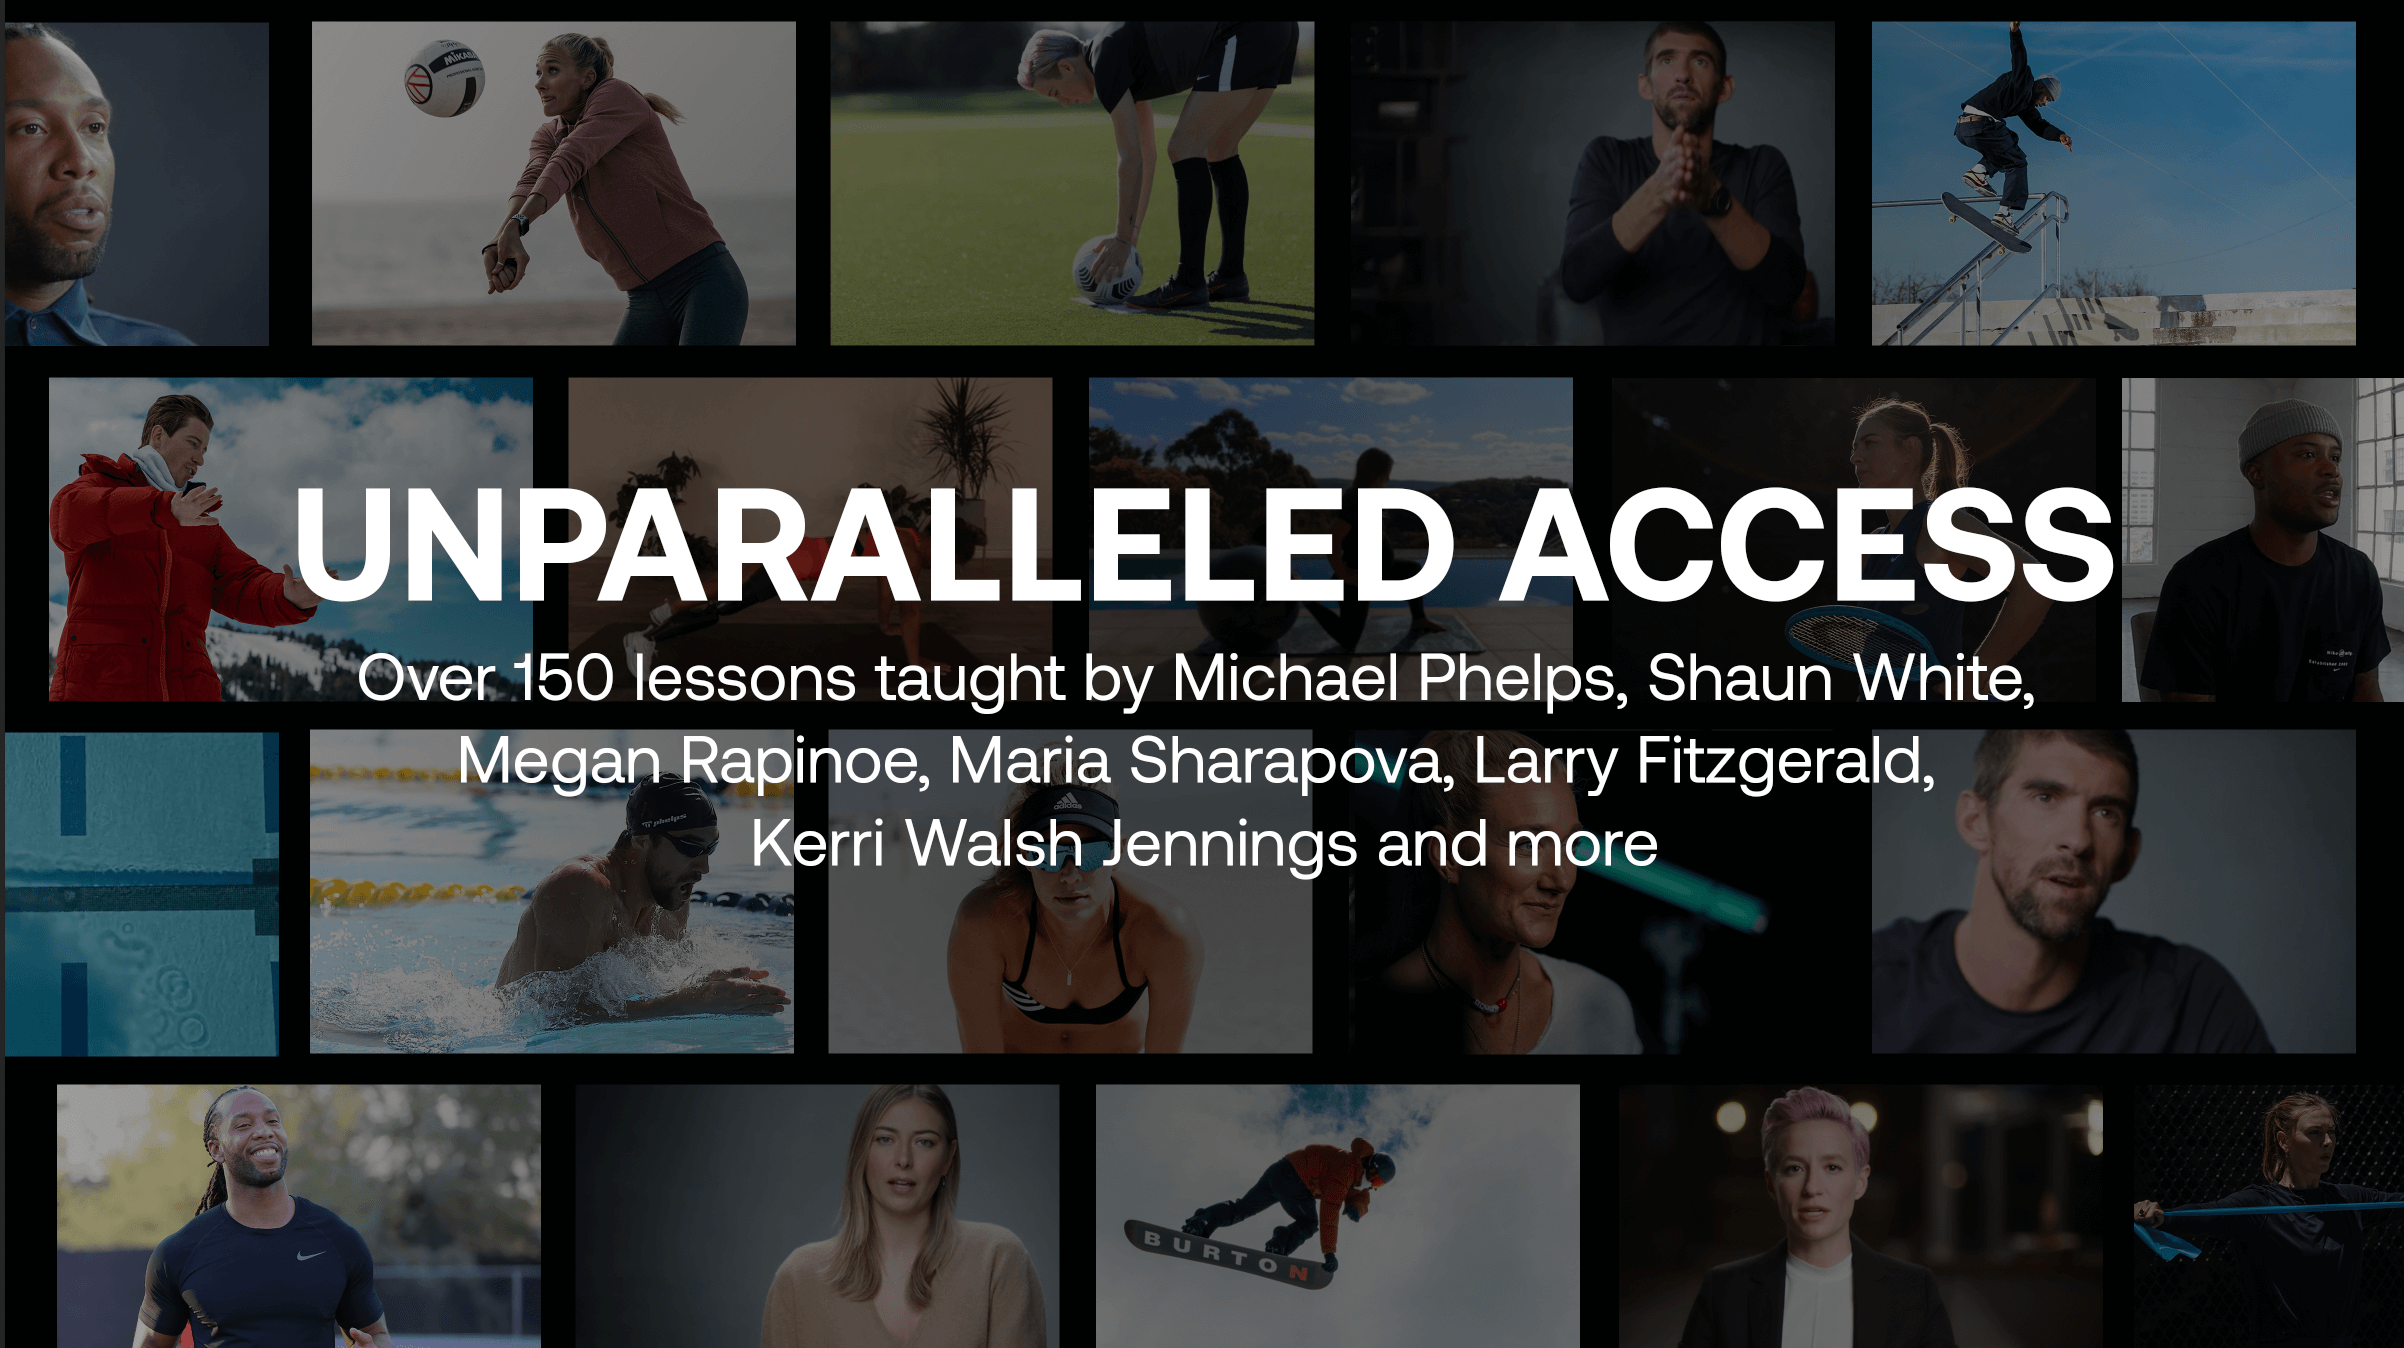 Unparalleled access | Over 150 lessons taught by Michael Phelps, Shaun White, Megan Rapinoe, Maria Sharapova, Larry Fitzgerald, Kerri Walsh Jennings, and more